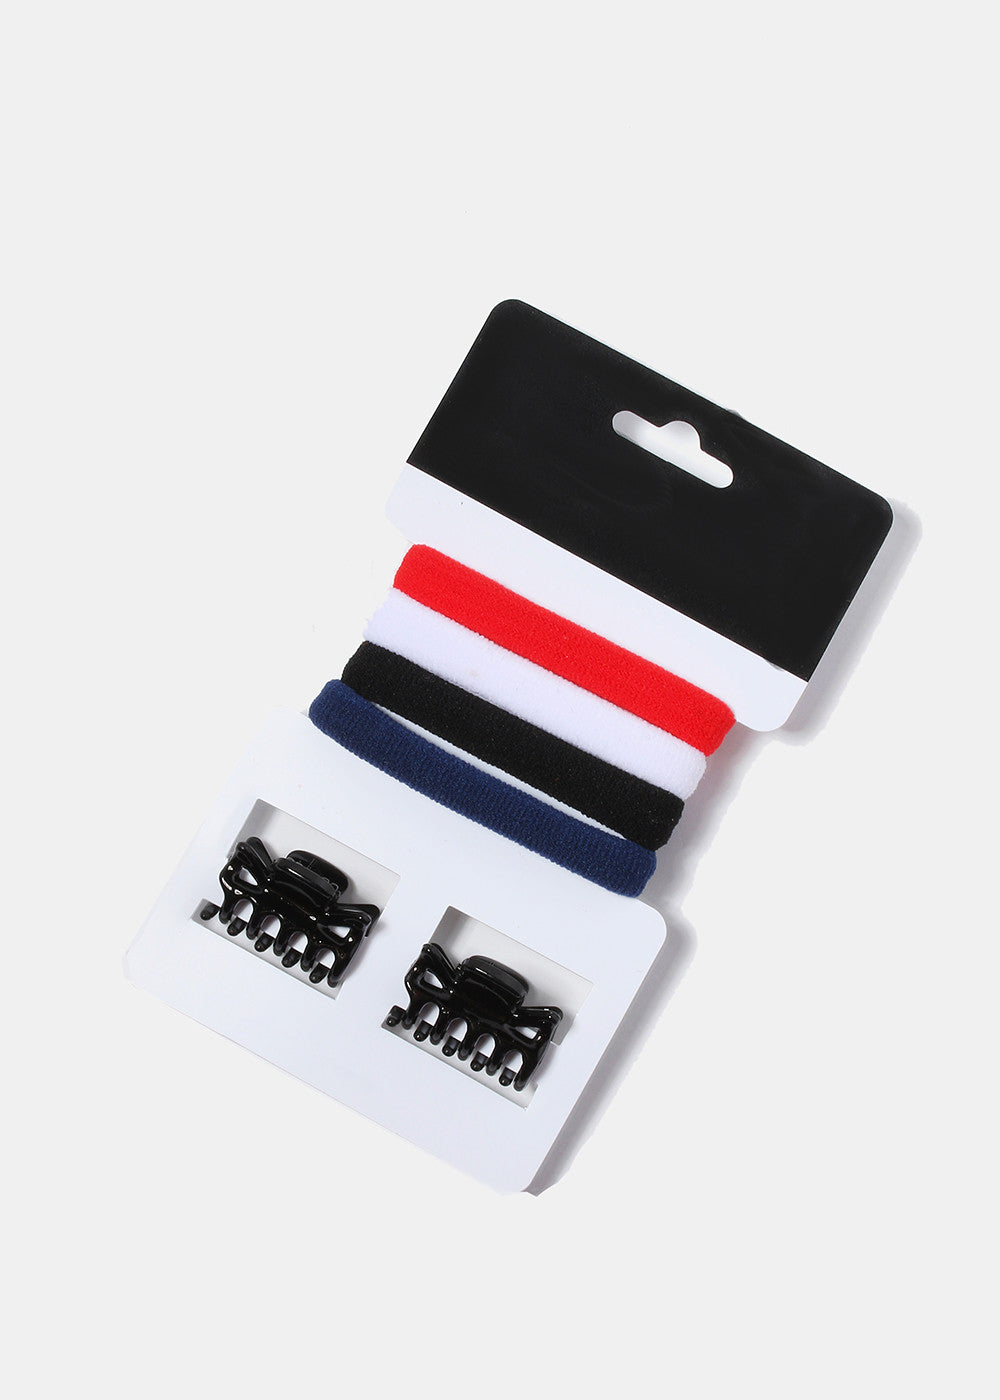 6 Piece Hair Tie & Clip Set